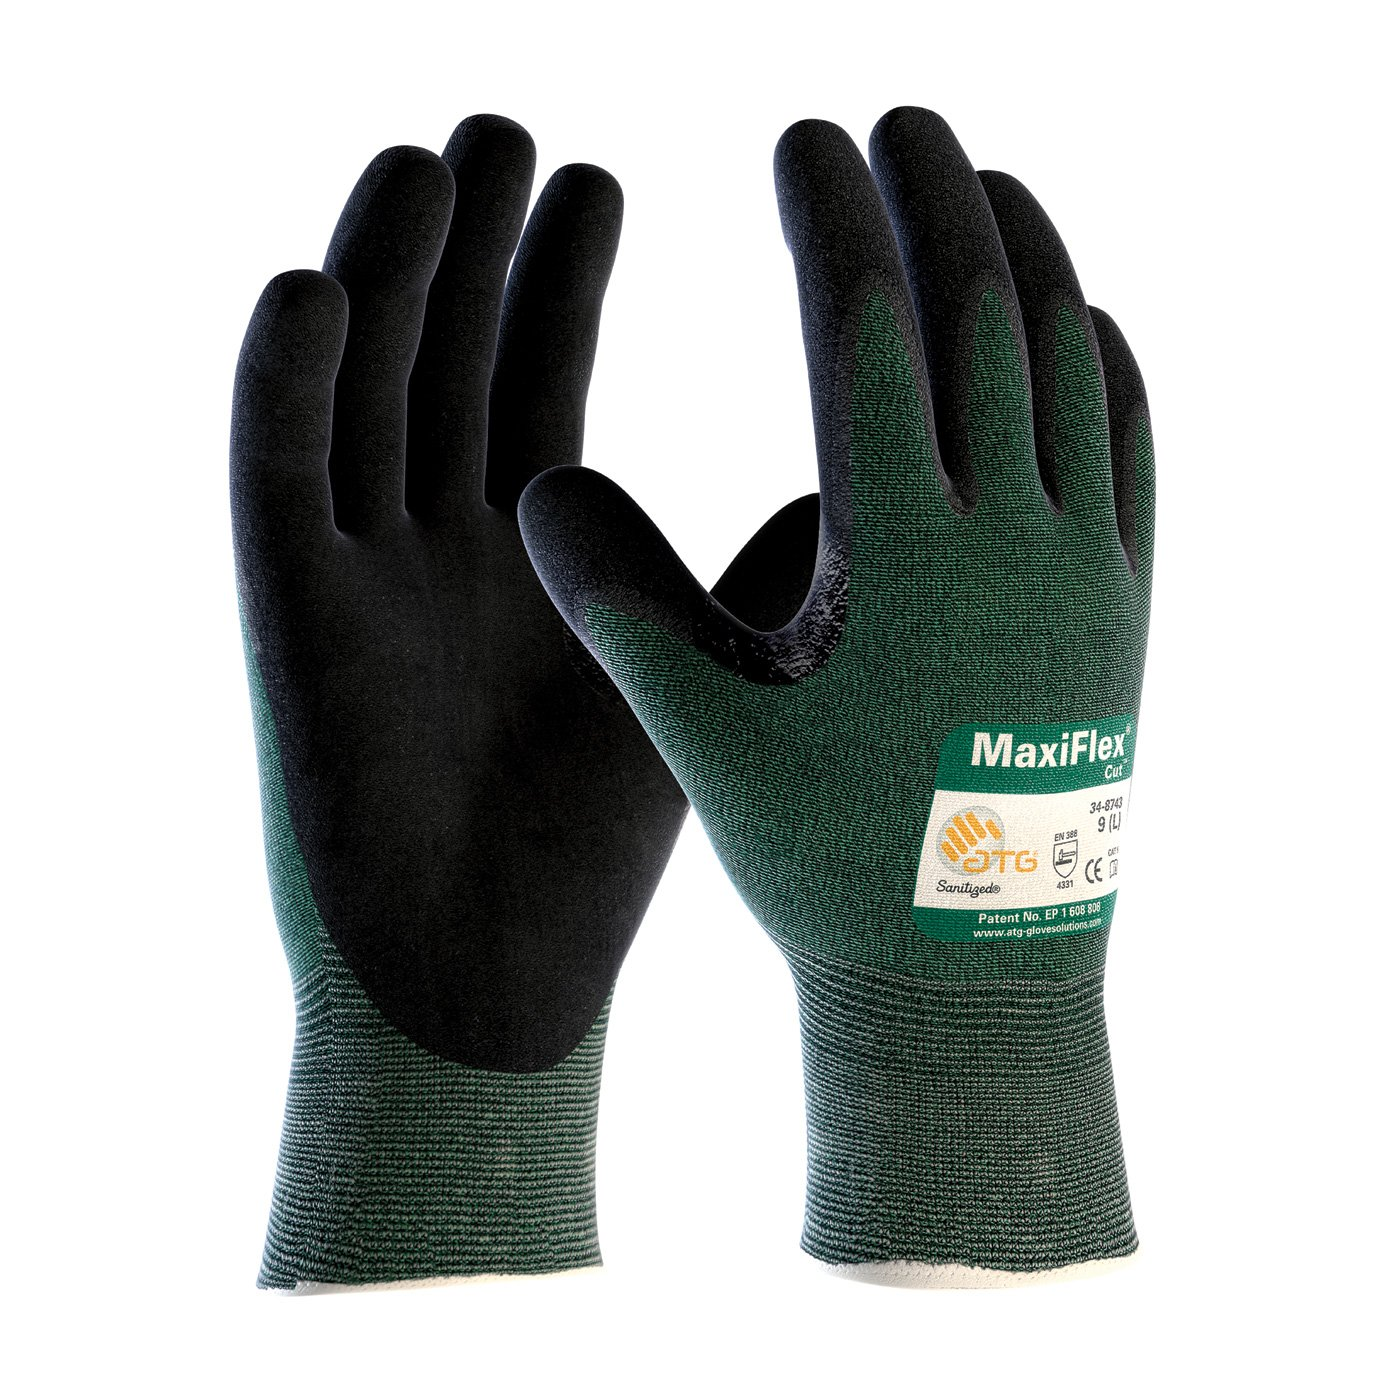 PIP ATG 34-8743/XL X-Large MaxiFlex Cut, Green Engineered Yarn, Black Gloves, 24-Pack